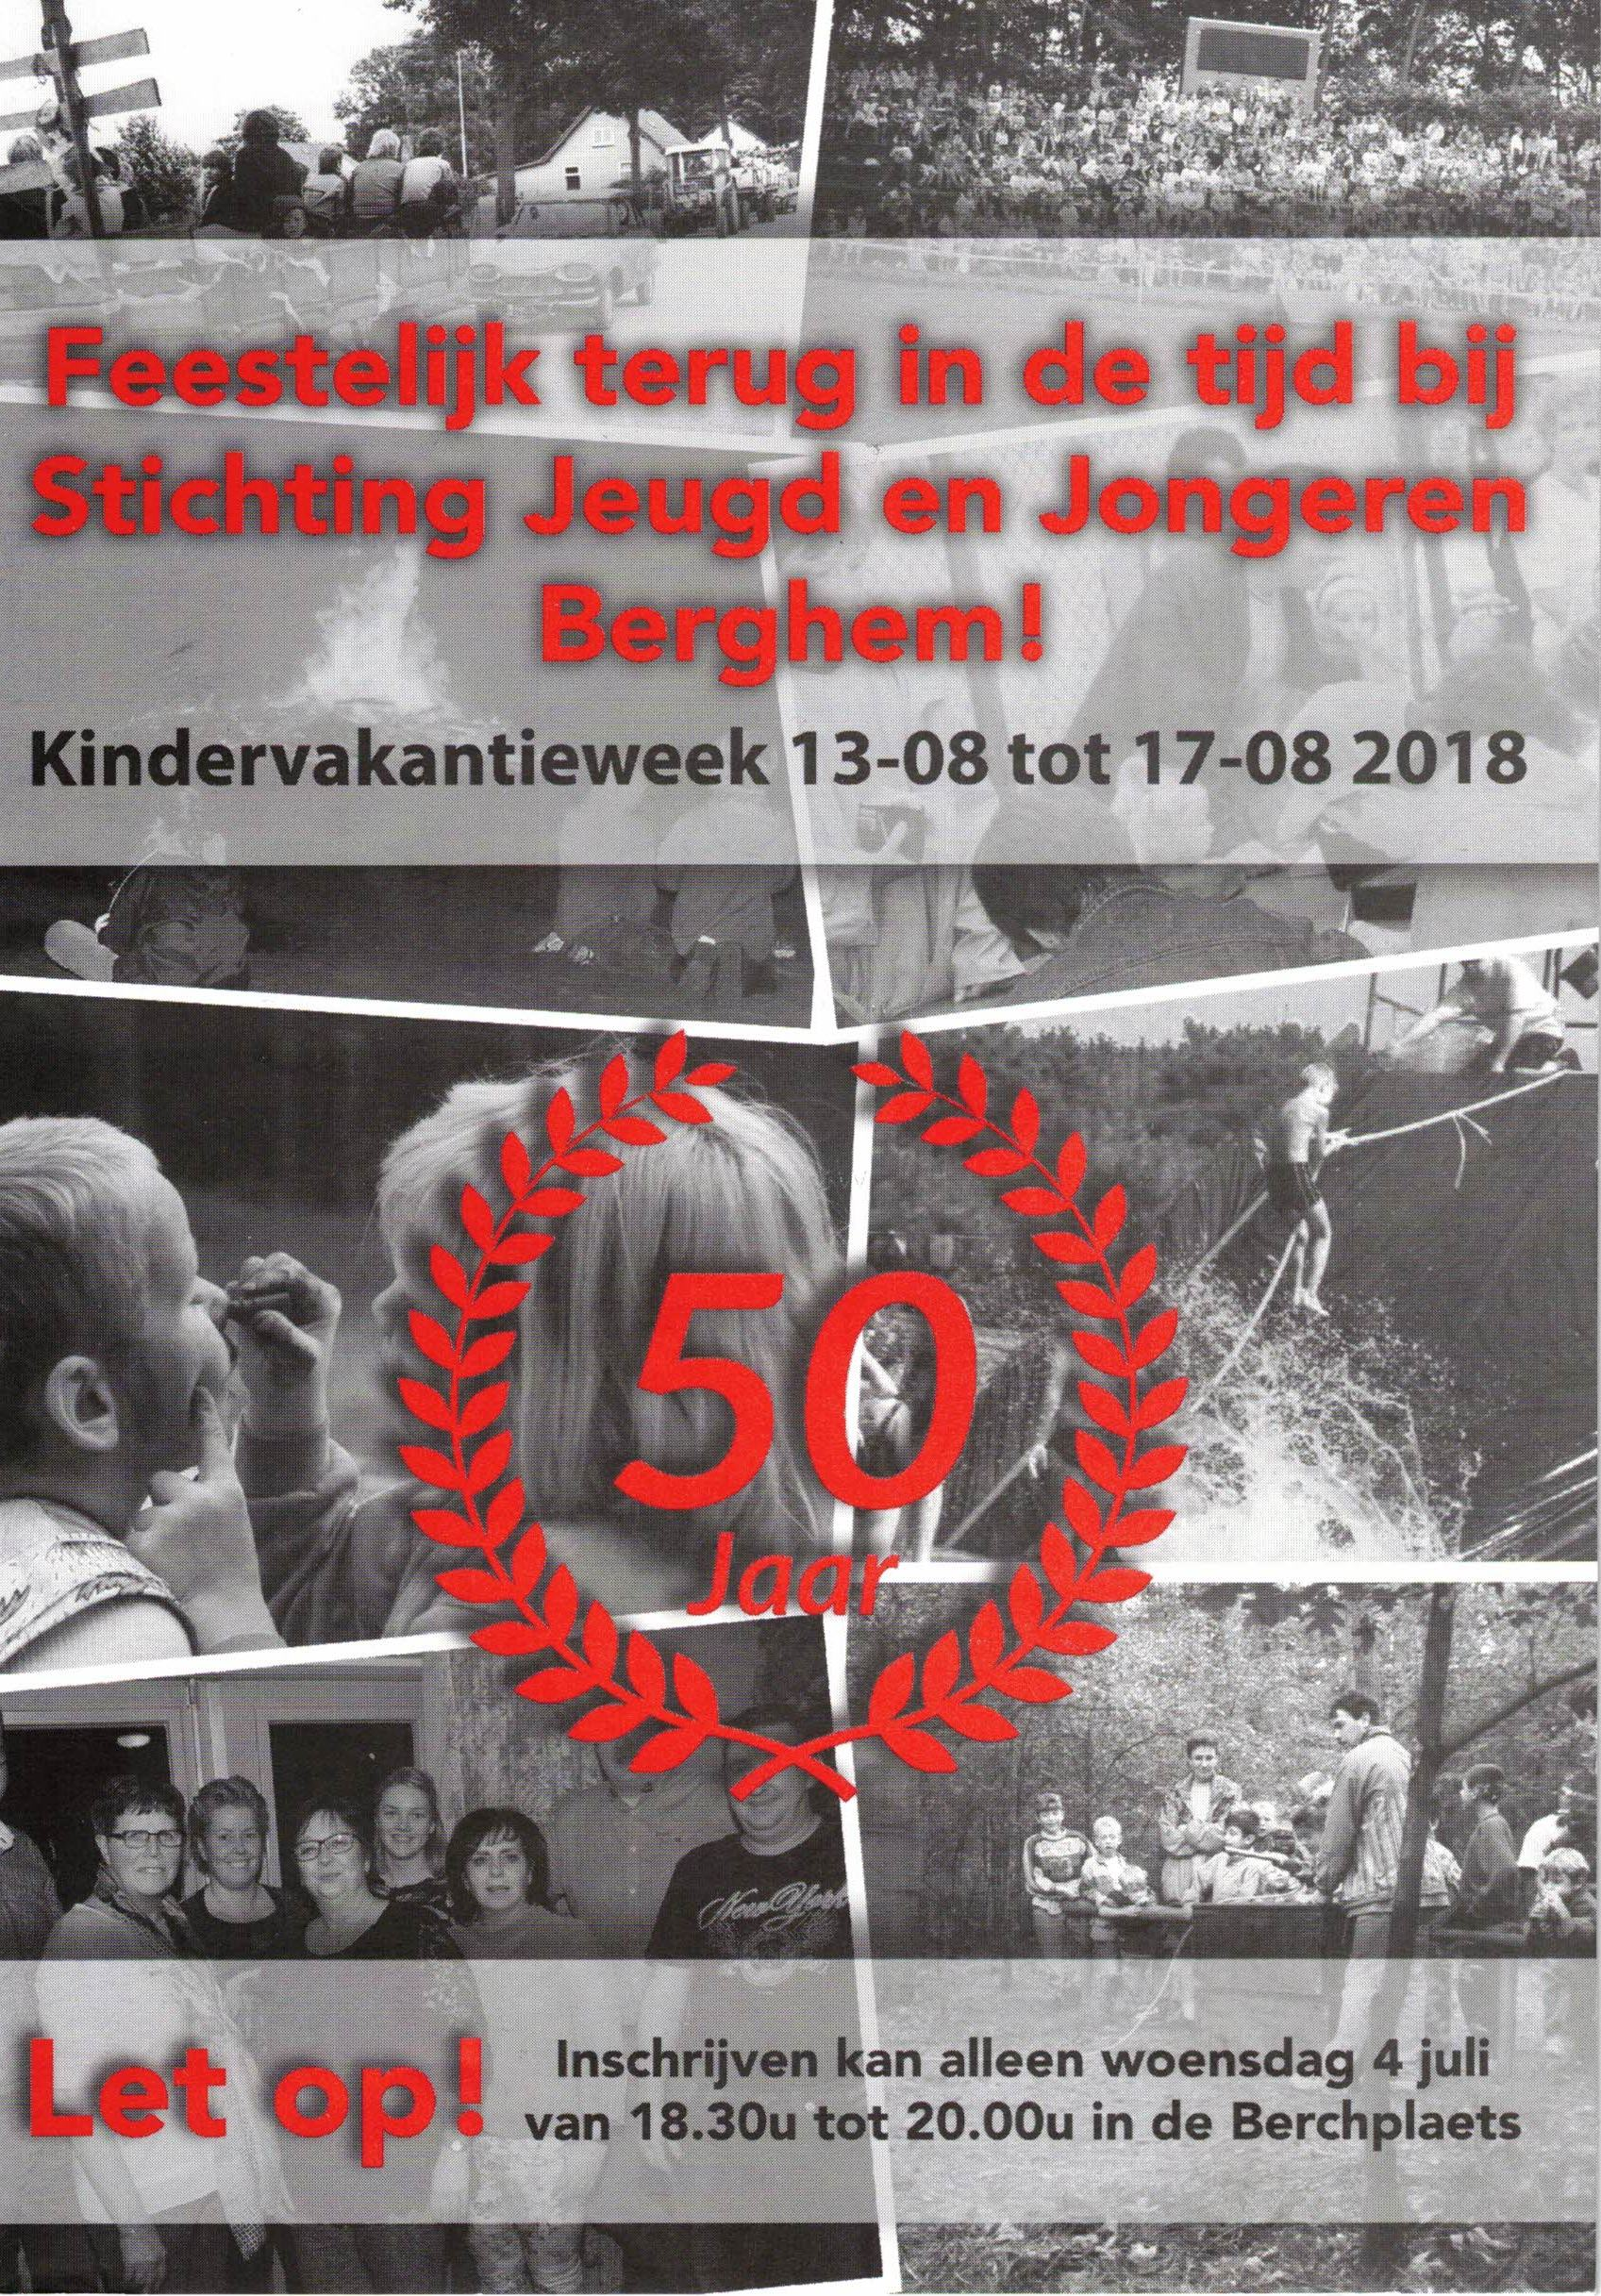 Kindervakantieweek 2018